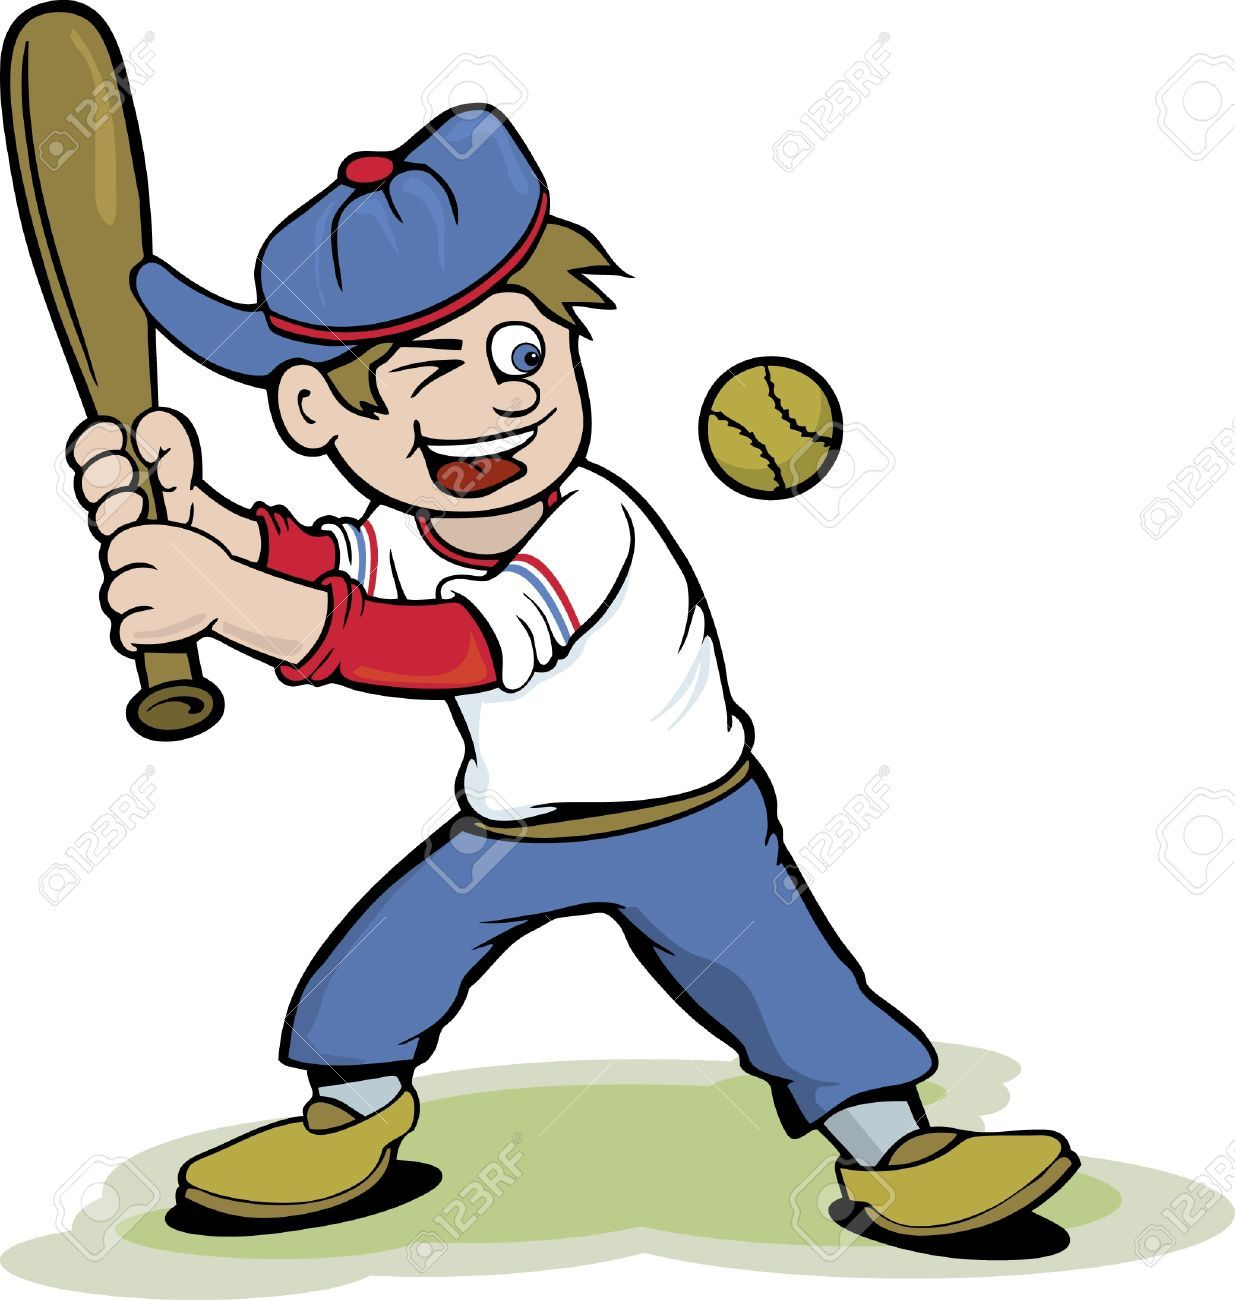 Kid playing baseball clipart » Clipart Portal.